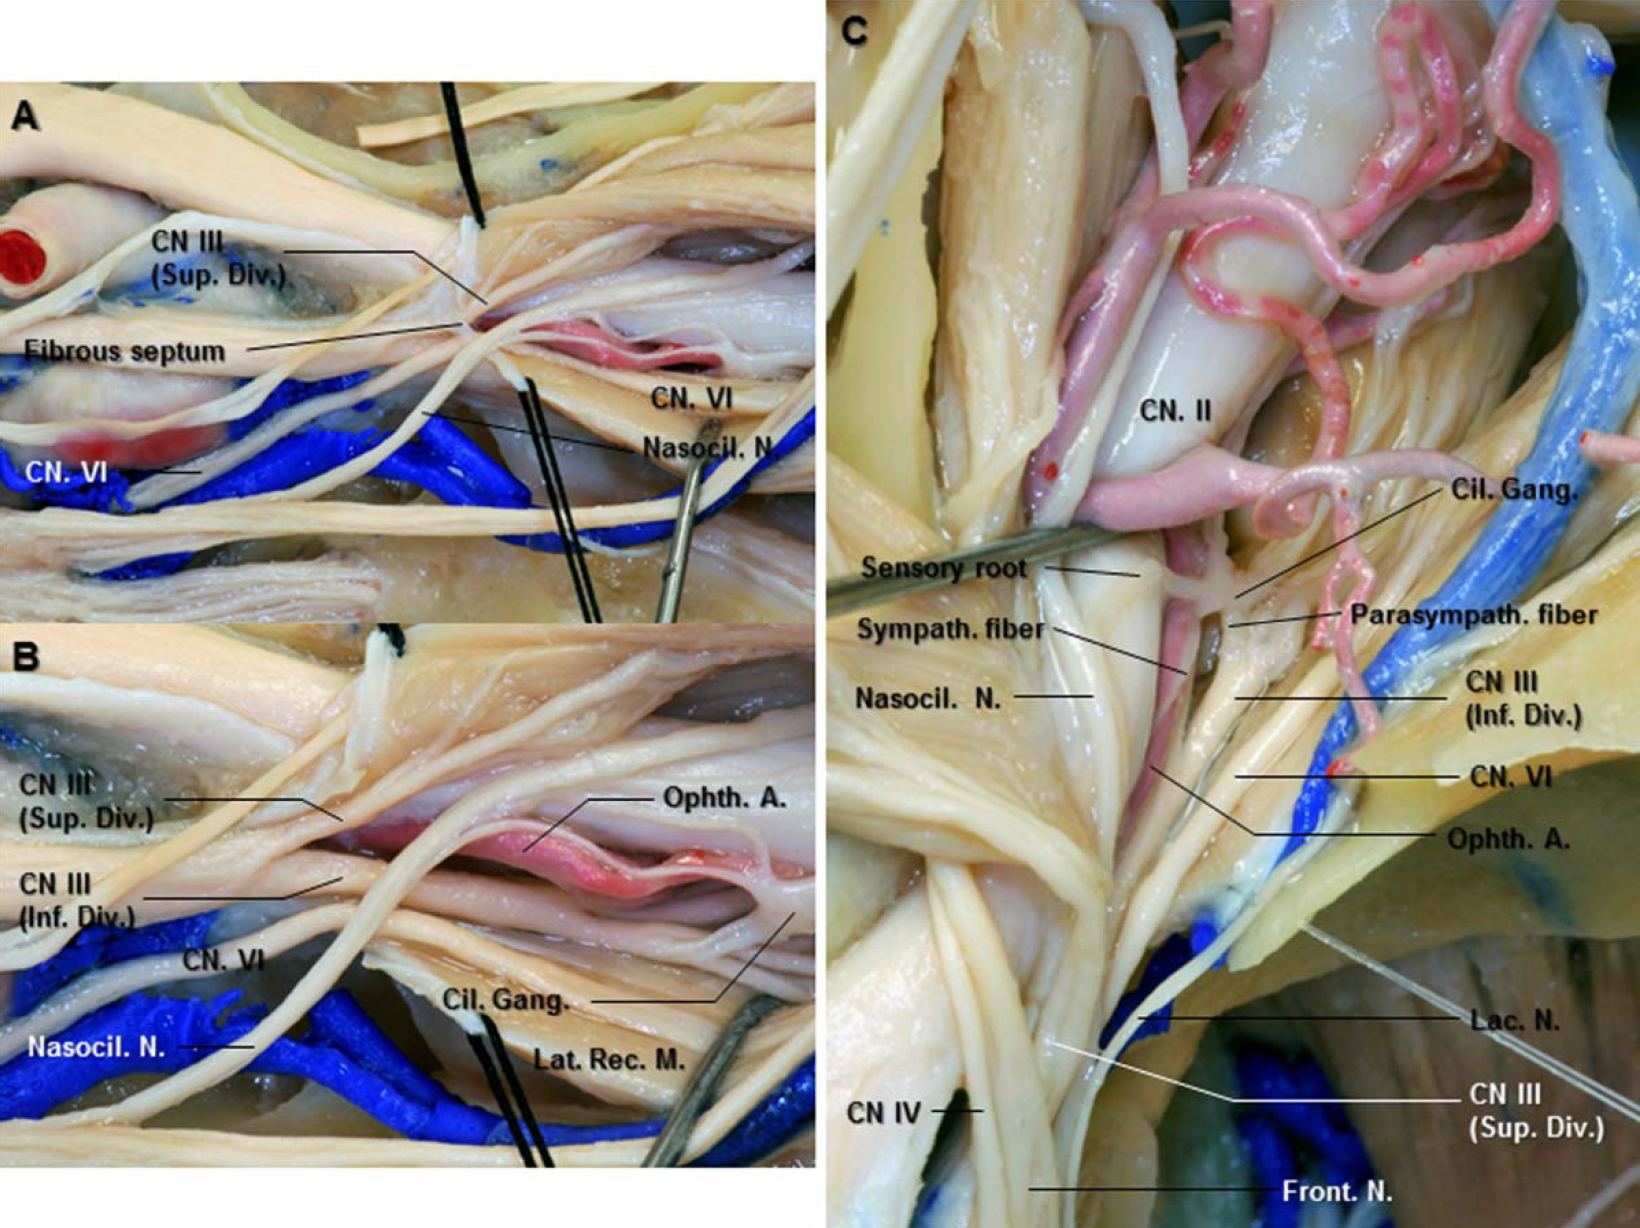 Figure 5. A: The annular tendon has been divided between the origin of the superior and lateral rectus muscles. The superior division of the oculomotor nerve passes upward to innervate the levator and superior rectus muscles. The inferior division courses inferior and medial as it proceeds through the SOF. The oculomotor nerve is separated from the nasociliary nerve by the fibrous septum in the oculomotor foramen. B: The fibrous septum has been removed to expose the oculomotor nerve in the foramen. At the orbital apex, the inferior division splits into three branches to innervate three muscles. The branch to the inferior oblique muscles gives rise to the motor parasympathetic root to the ciliary ganglion, situated on the inferolateral aspect of the optic nerve. C: The optic nerve has been retracted to the medial side to expose the sympathetic nerves that arise in the cervical sympathetic ganglia. The sensory root of the ciliary ganglion arises from the nasociliary nerve. Abbreviations: A., artery; Cil. Gang., ciliary ganglion; CN., cranial nerve; Div., division; Front., frontal; Inf., inferior; Lat., lateral; N., nerve; Nasocil., nasociliary; Ophth., ophthalmic; Parasympath., parasympathetic; Rec., rectus; Sup., superior; Sympath., sympathetic. (Images courtesy of AL Rhoton, Jr.)